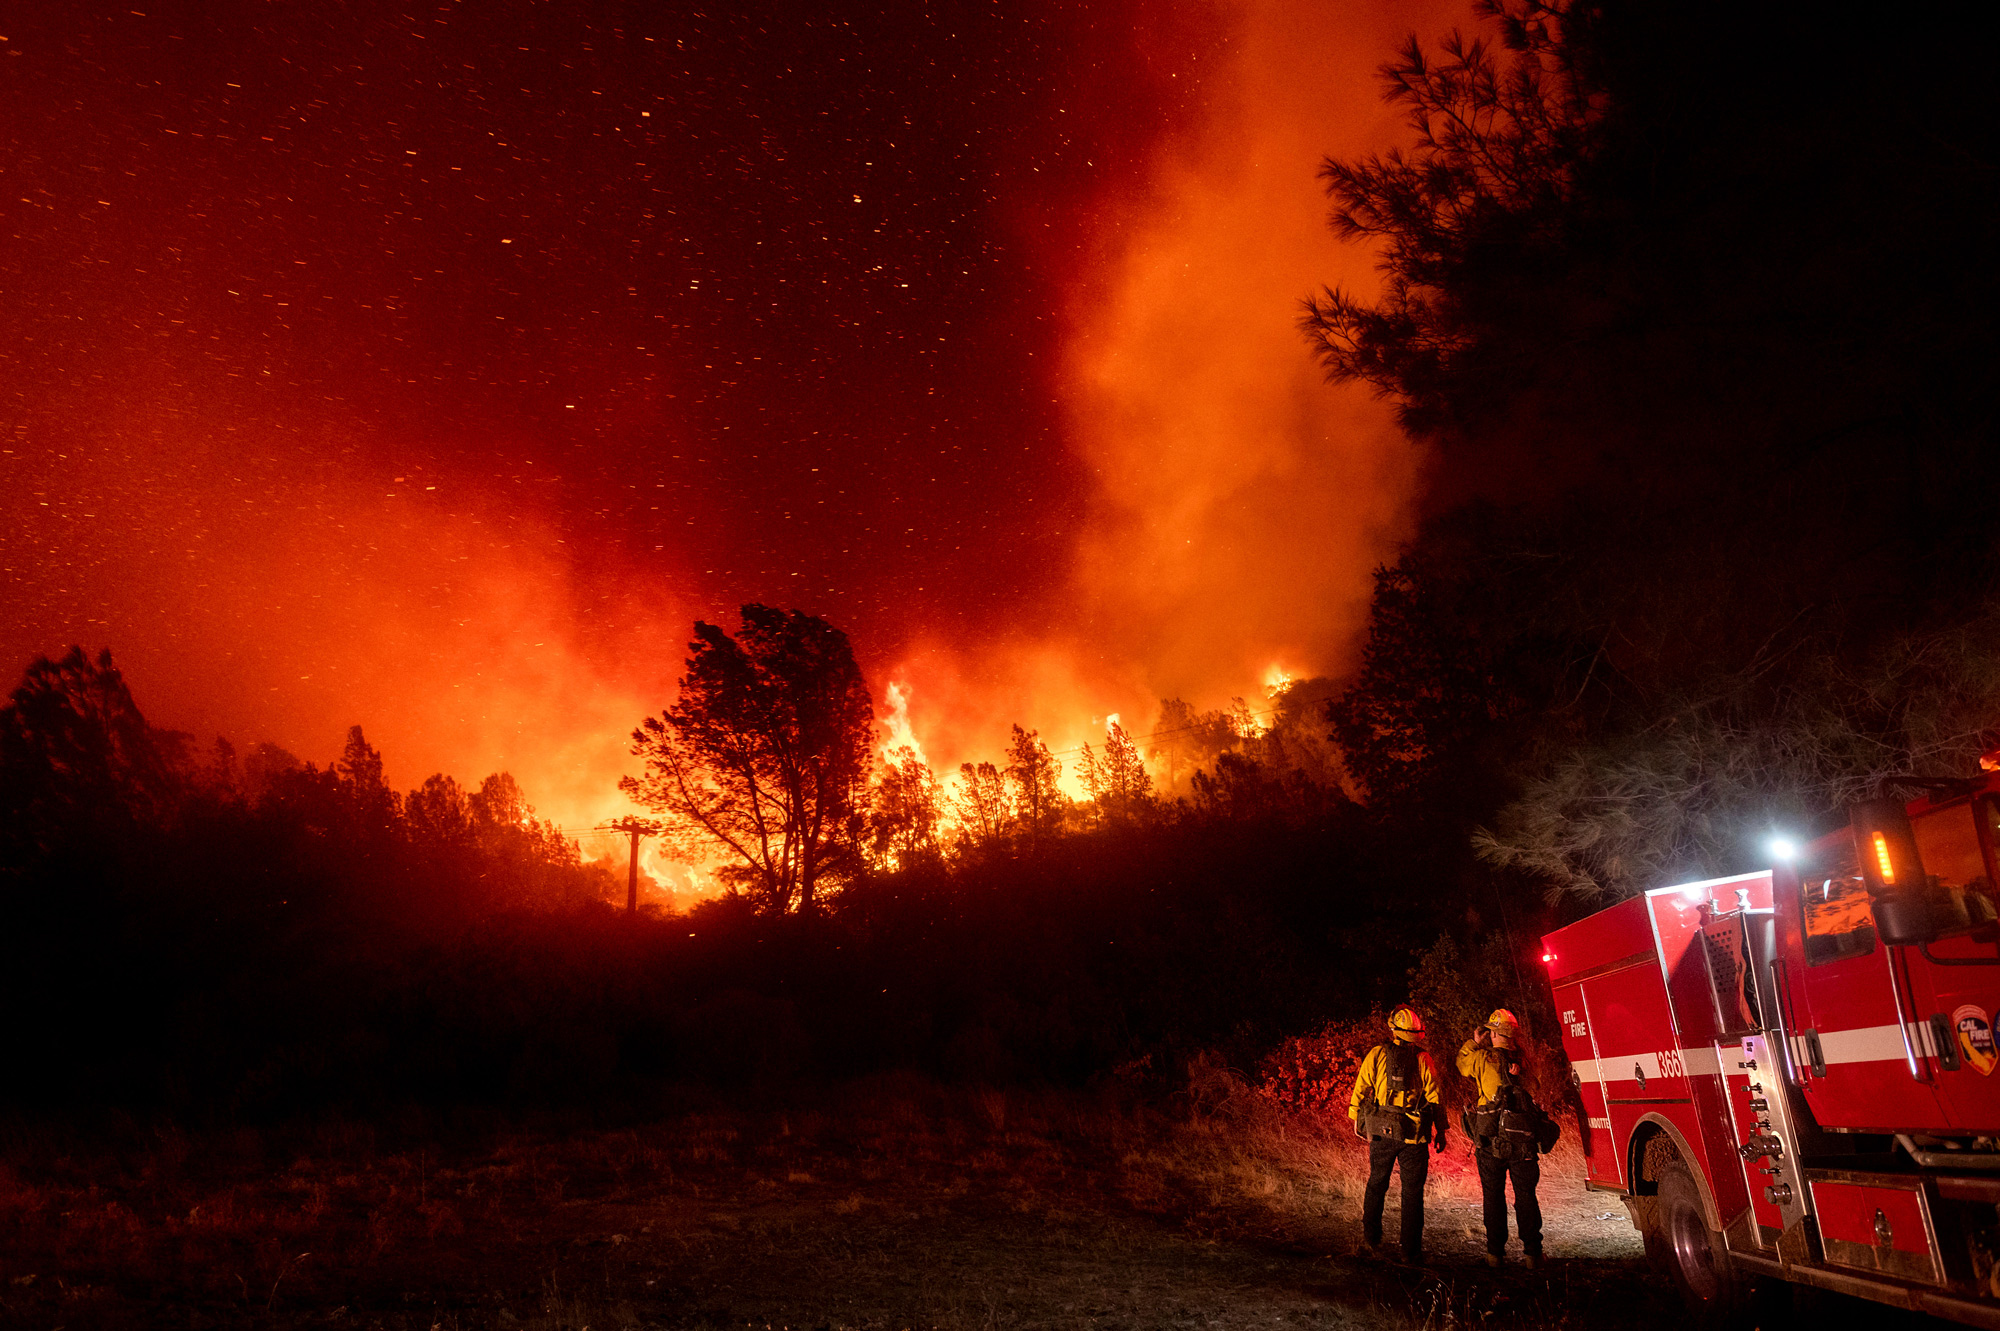 Firefighters watch the Bear Fire approach in Oroville, California, on September 9.